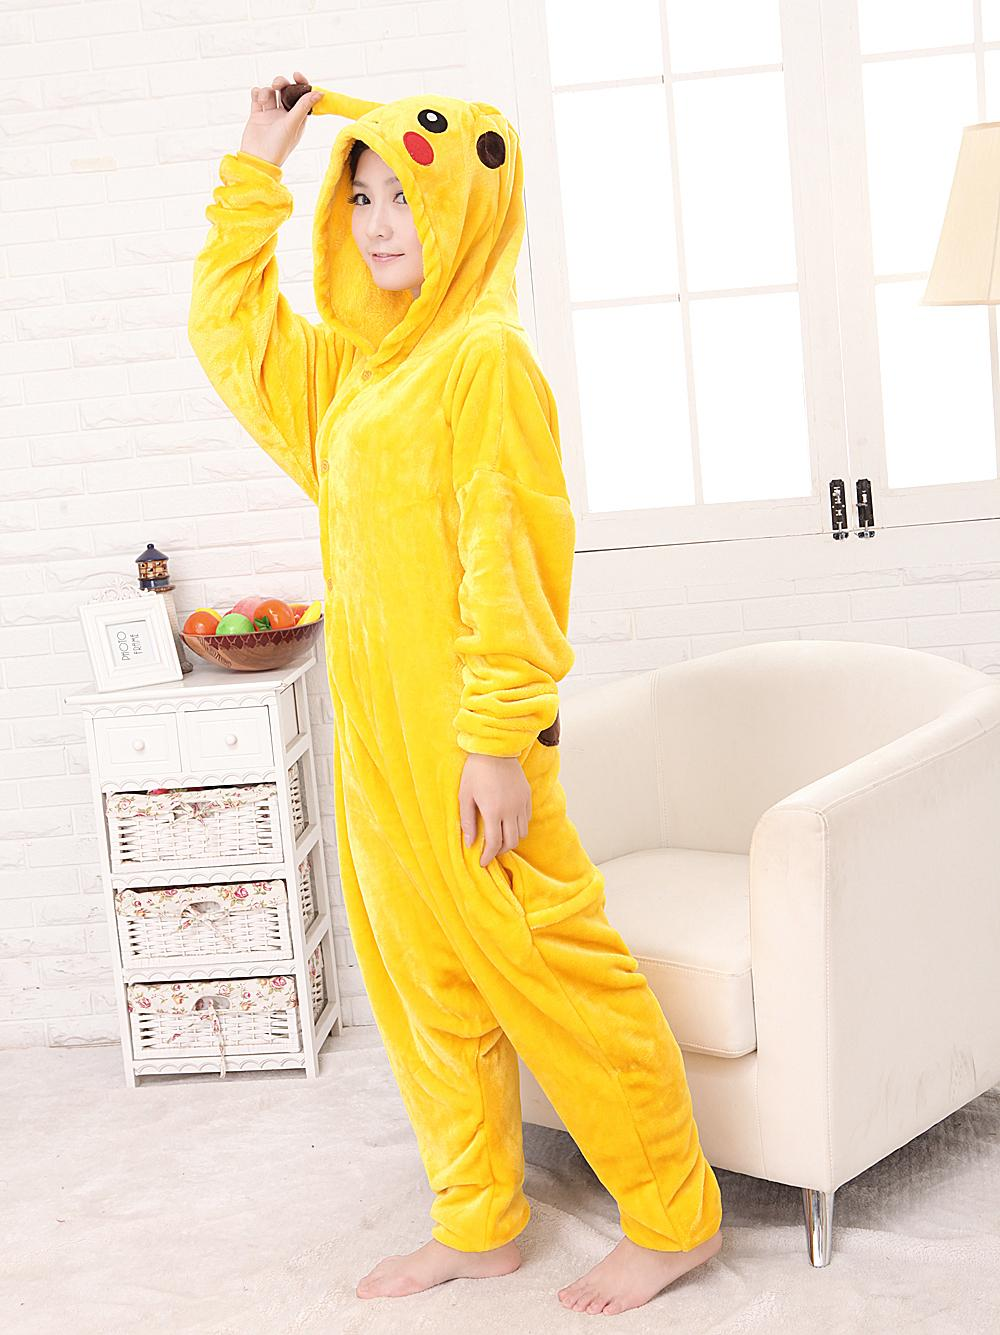 free PP Hot Selling Unisex Flannel Fashion Pajamas Pyjama Adult Cute Anime Cosplay Costume Onesie Sleepwear Stitch Pikachu S-XL